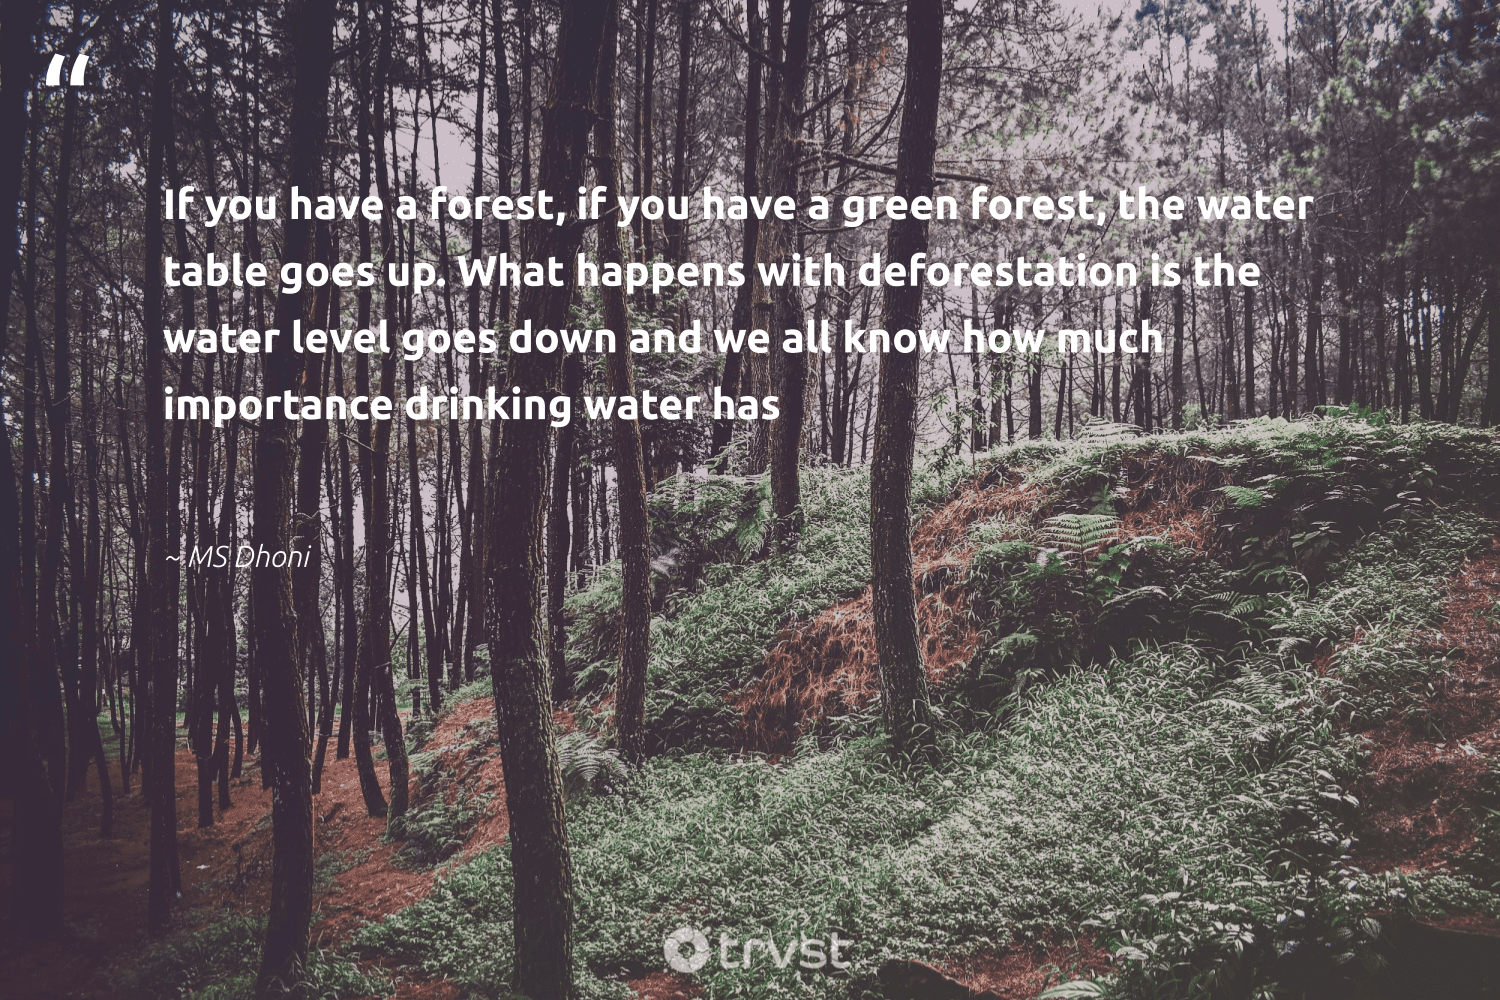 """""""If you have a forest, if you have a green forest, the water table goes up. What happens with deforestation is the water level goes down and we all know how much importance drinking water has""""  - MS Dhoni #trvst #quotes"""